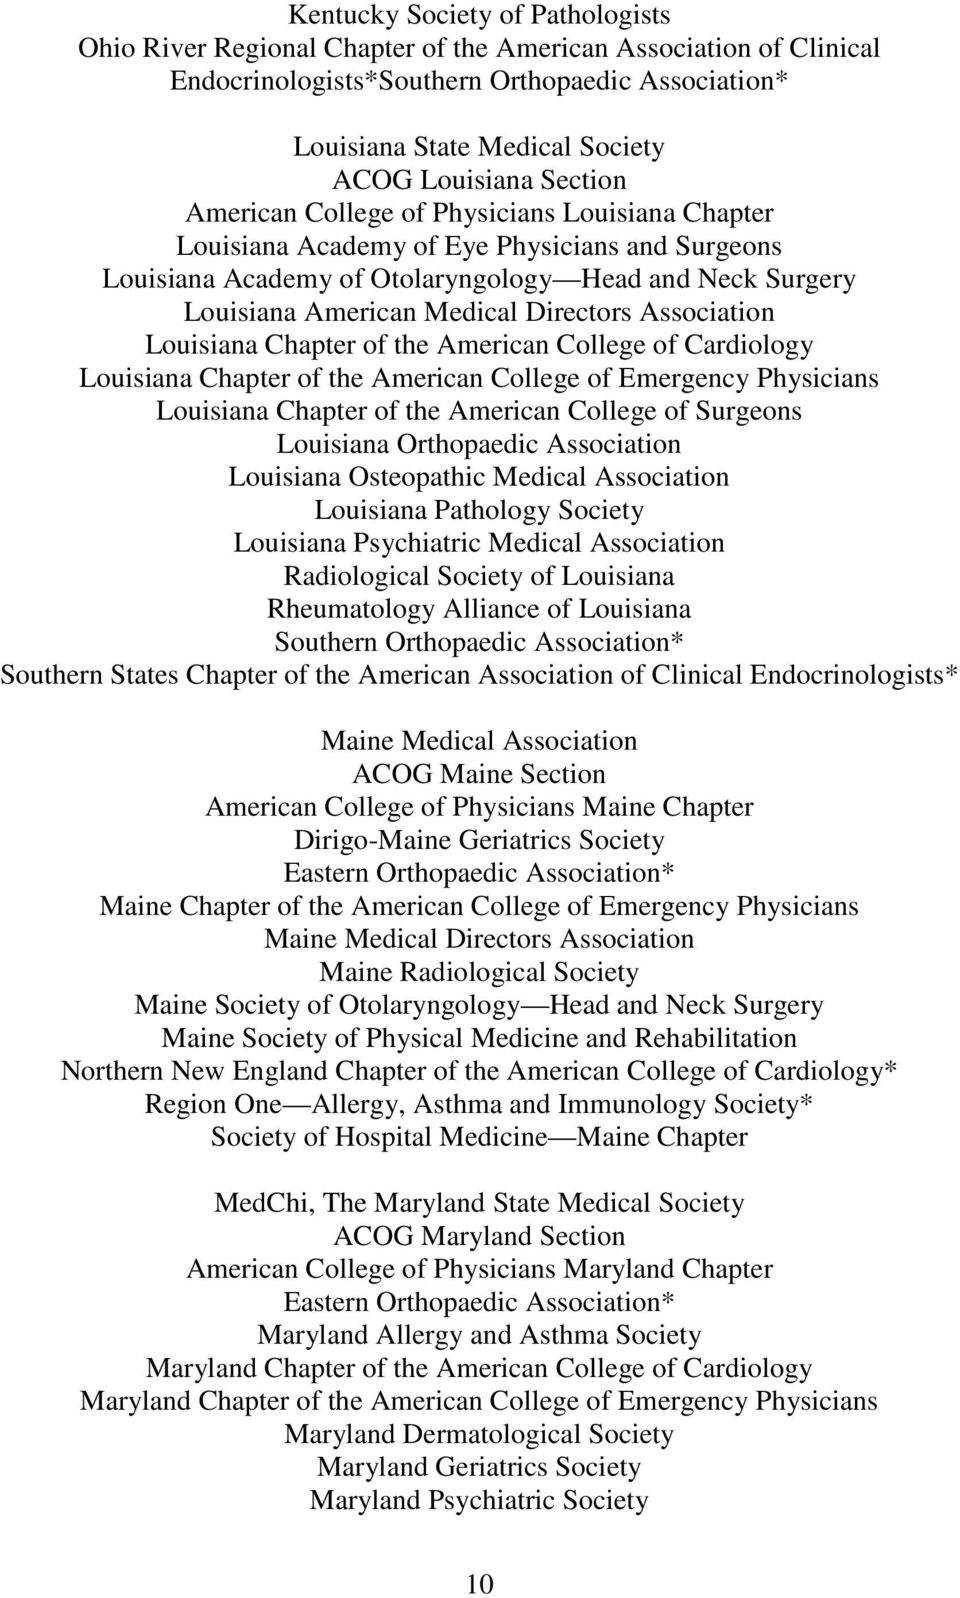 Chapter of the American College of Cardiology Louisiana Chapter of the American College of Emergency Physicians Louisiana Chapter of the American College of Surgeons Louisiana Orthopaedic Association